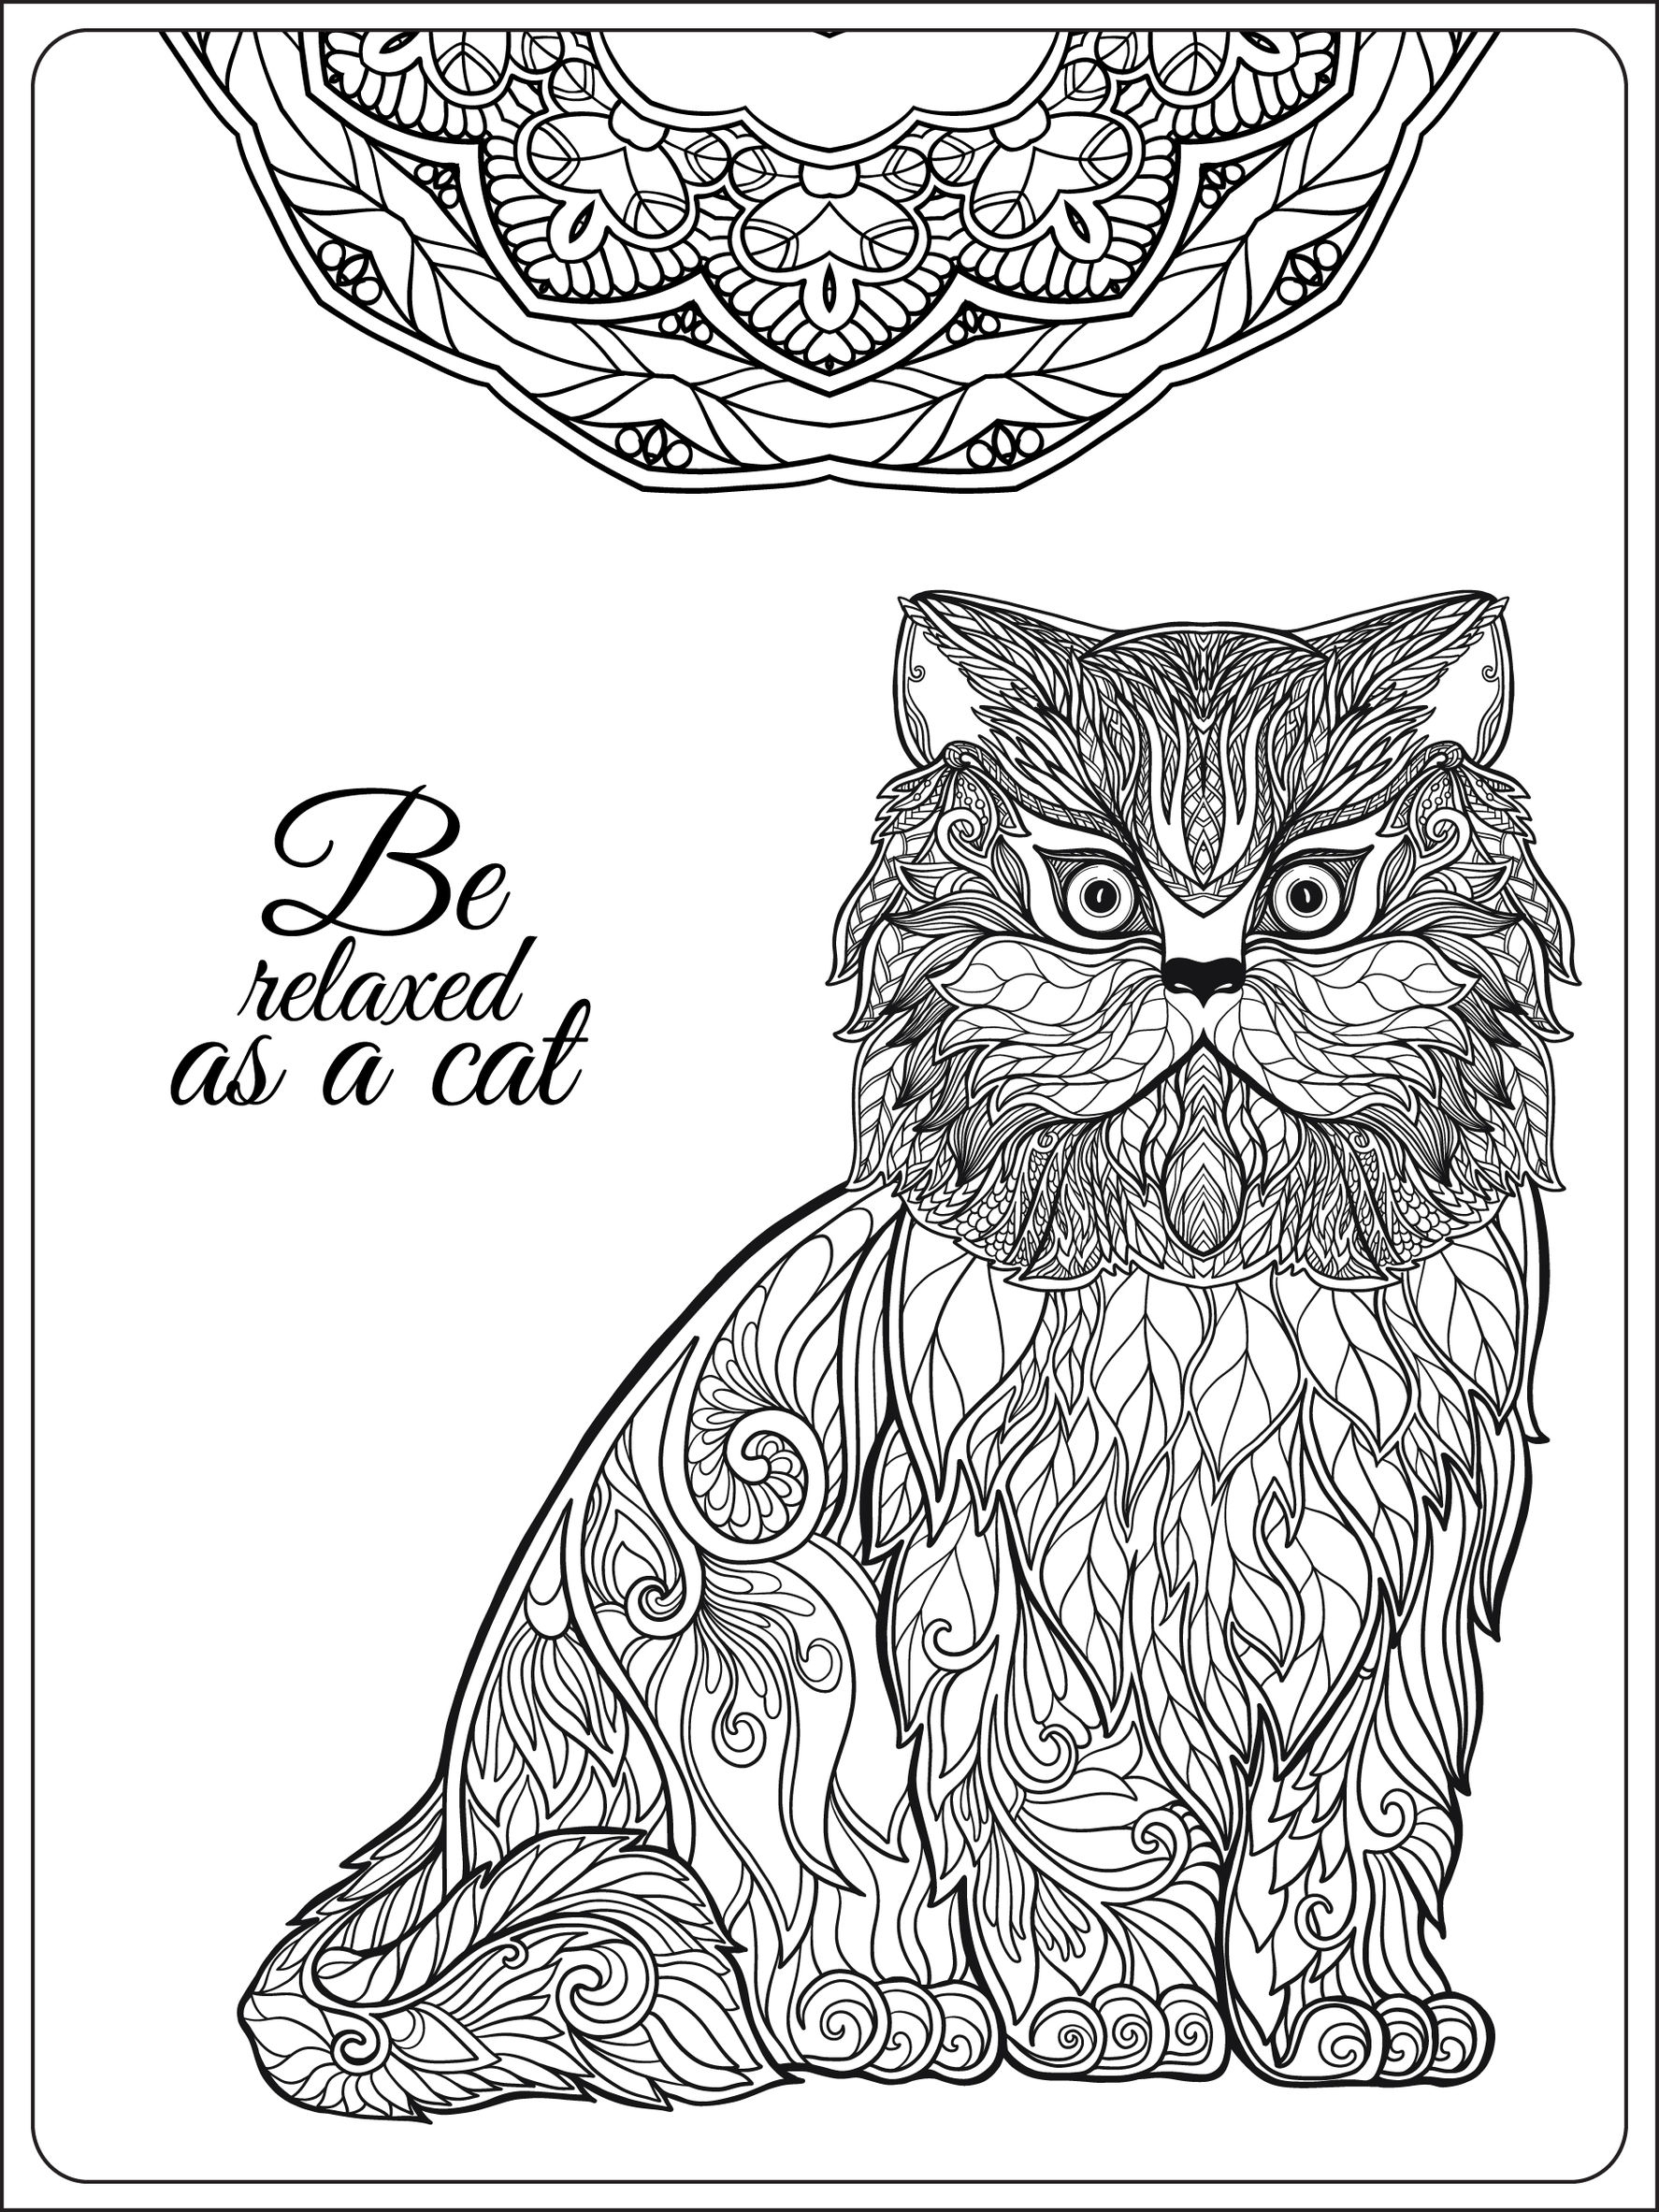 Relaxing Coloring Pages Be Relaxing As A Cat Cats Adult Coloring Pages